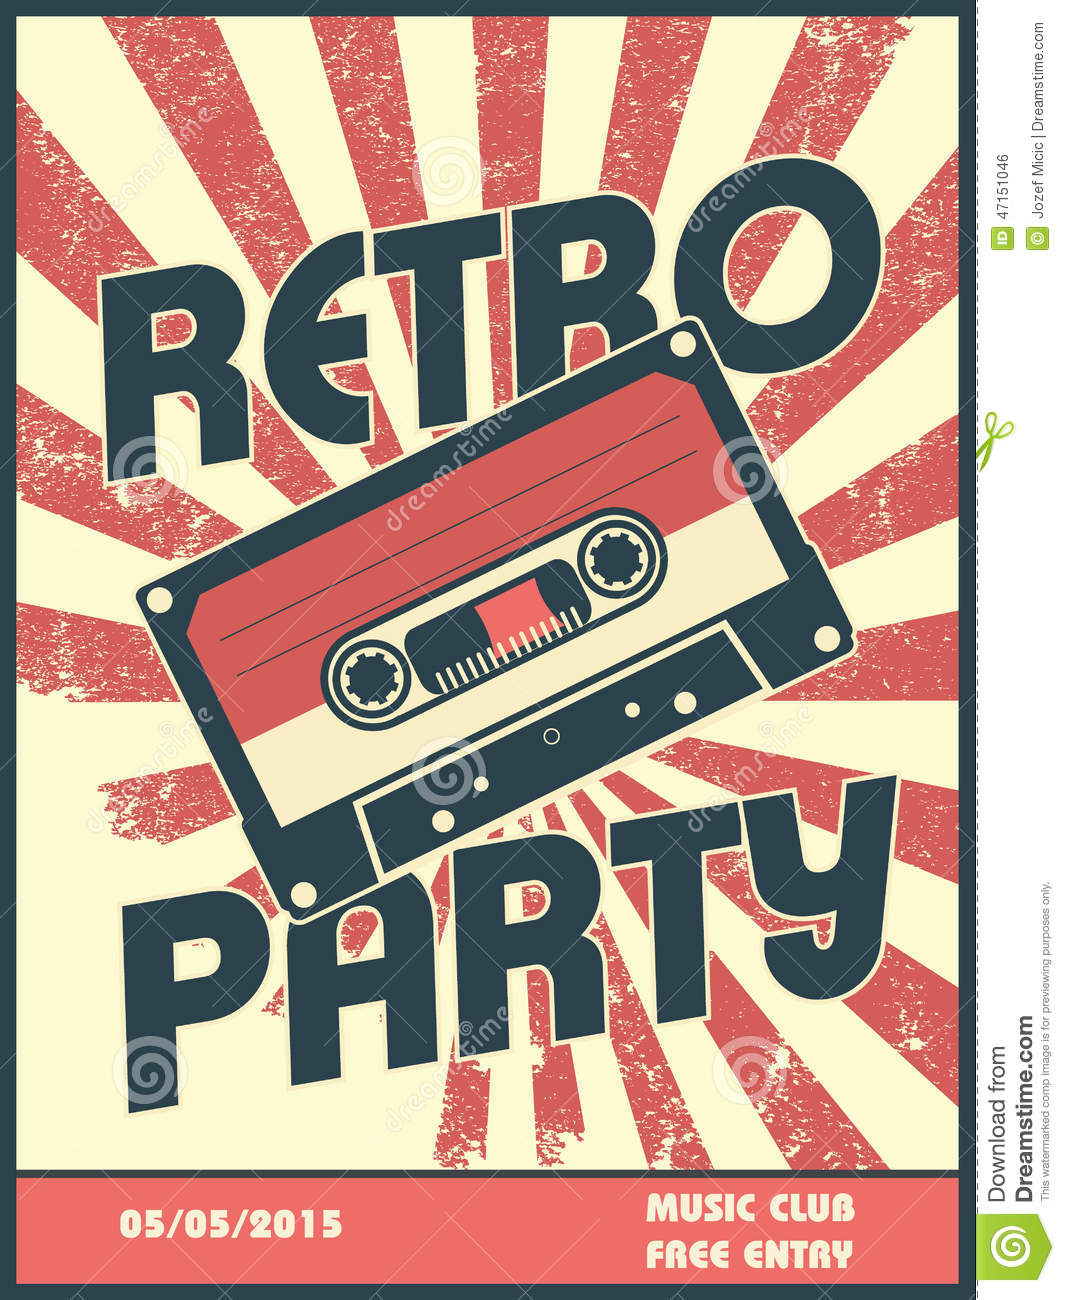 Retro party music poster design with vintage style stock for Retro images